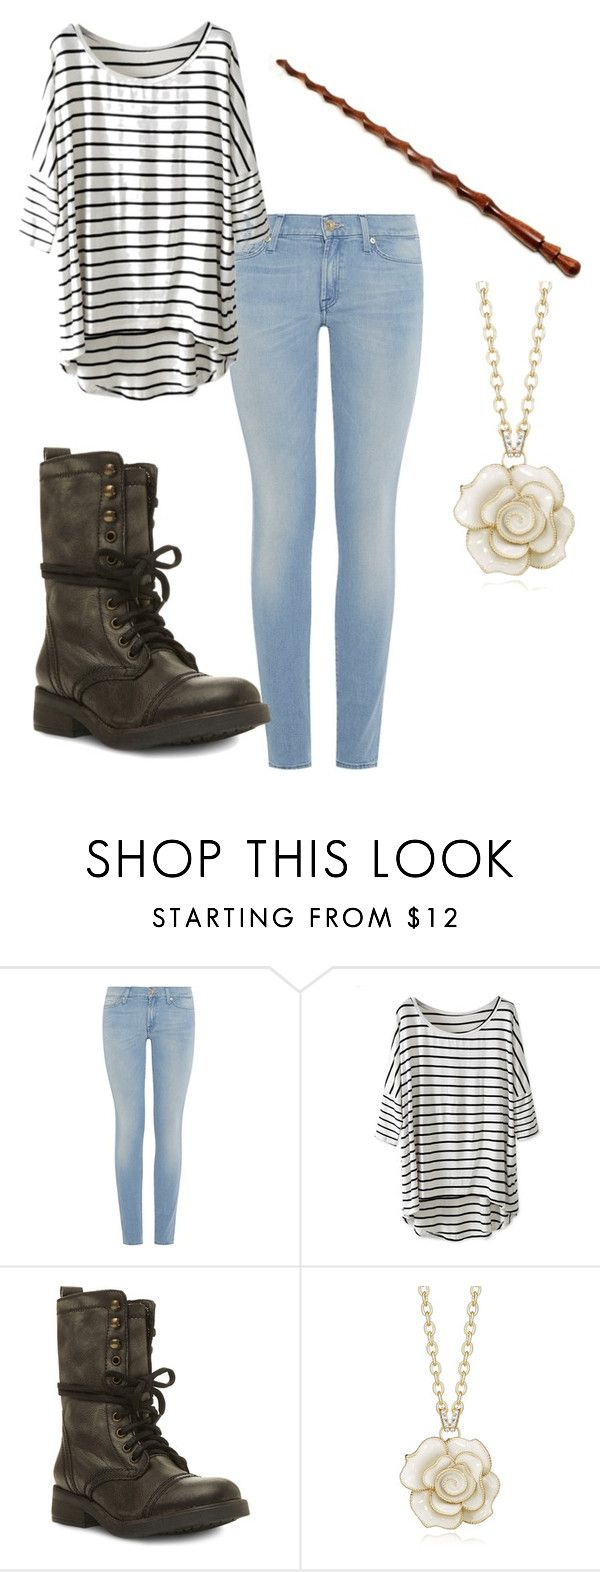 """""""Untitled #52"""" by nerdyturtlex ❤ liked on Polyvore featuring 7 For All Mankind and Steve Madden"""